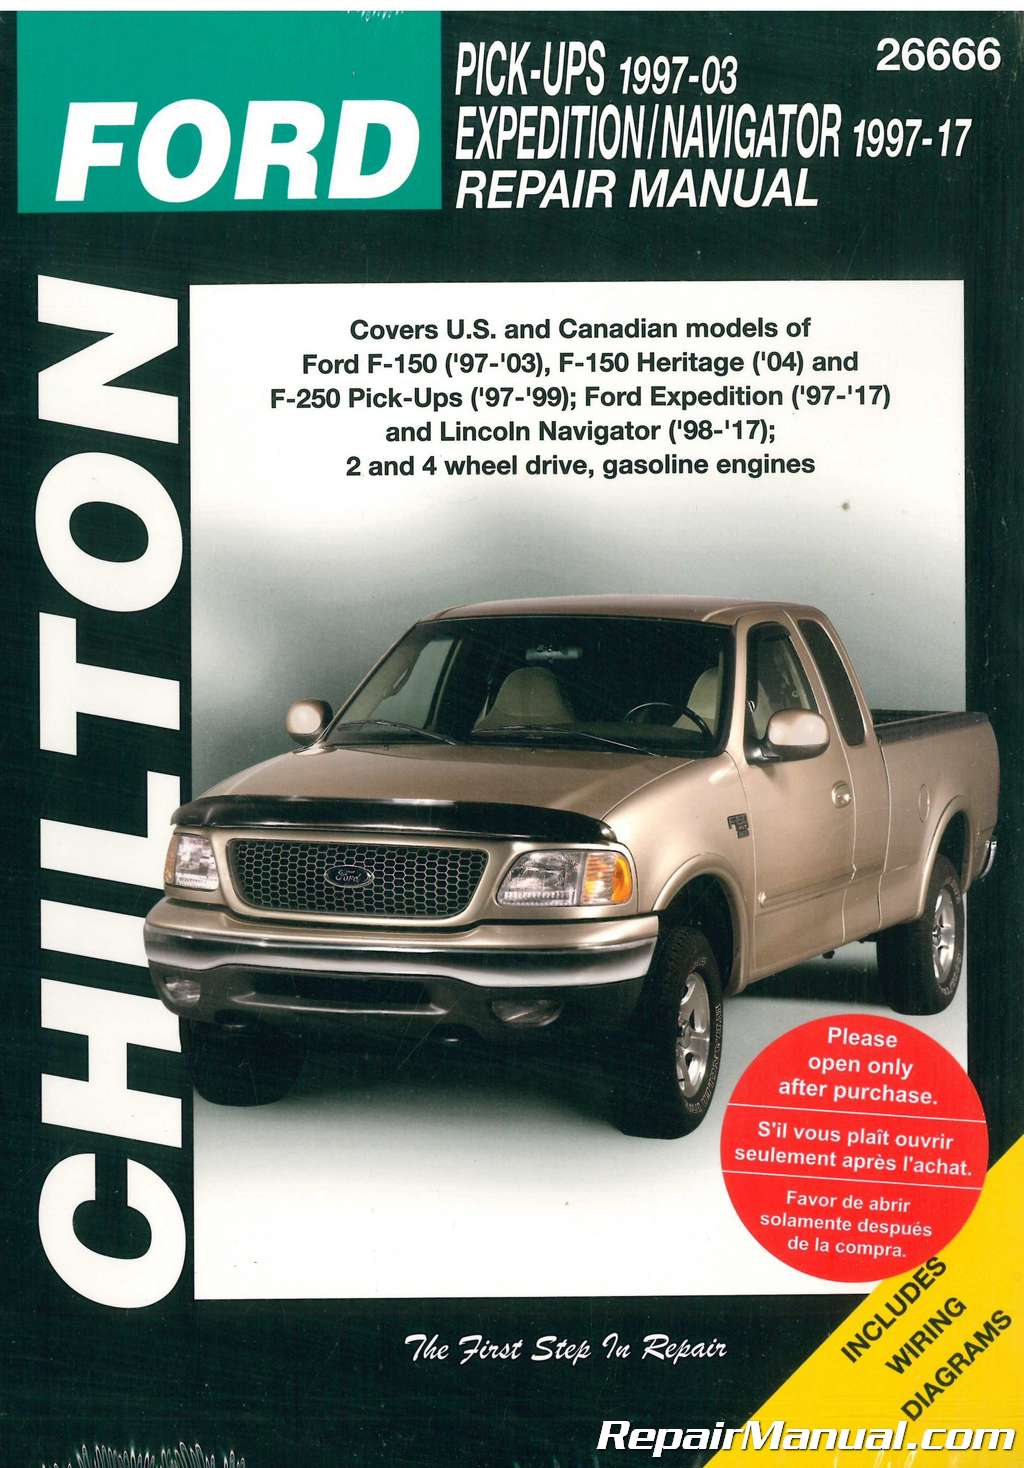 Chilton Ford Ford Pick-Ups 1997-2003 Ford Expedition and Lincoln Navigator  1997-2017 Repair Manual